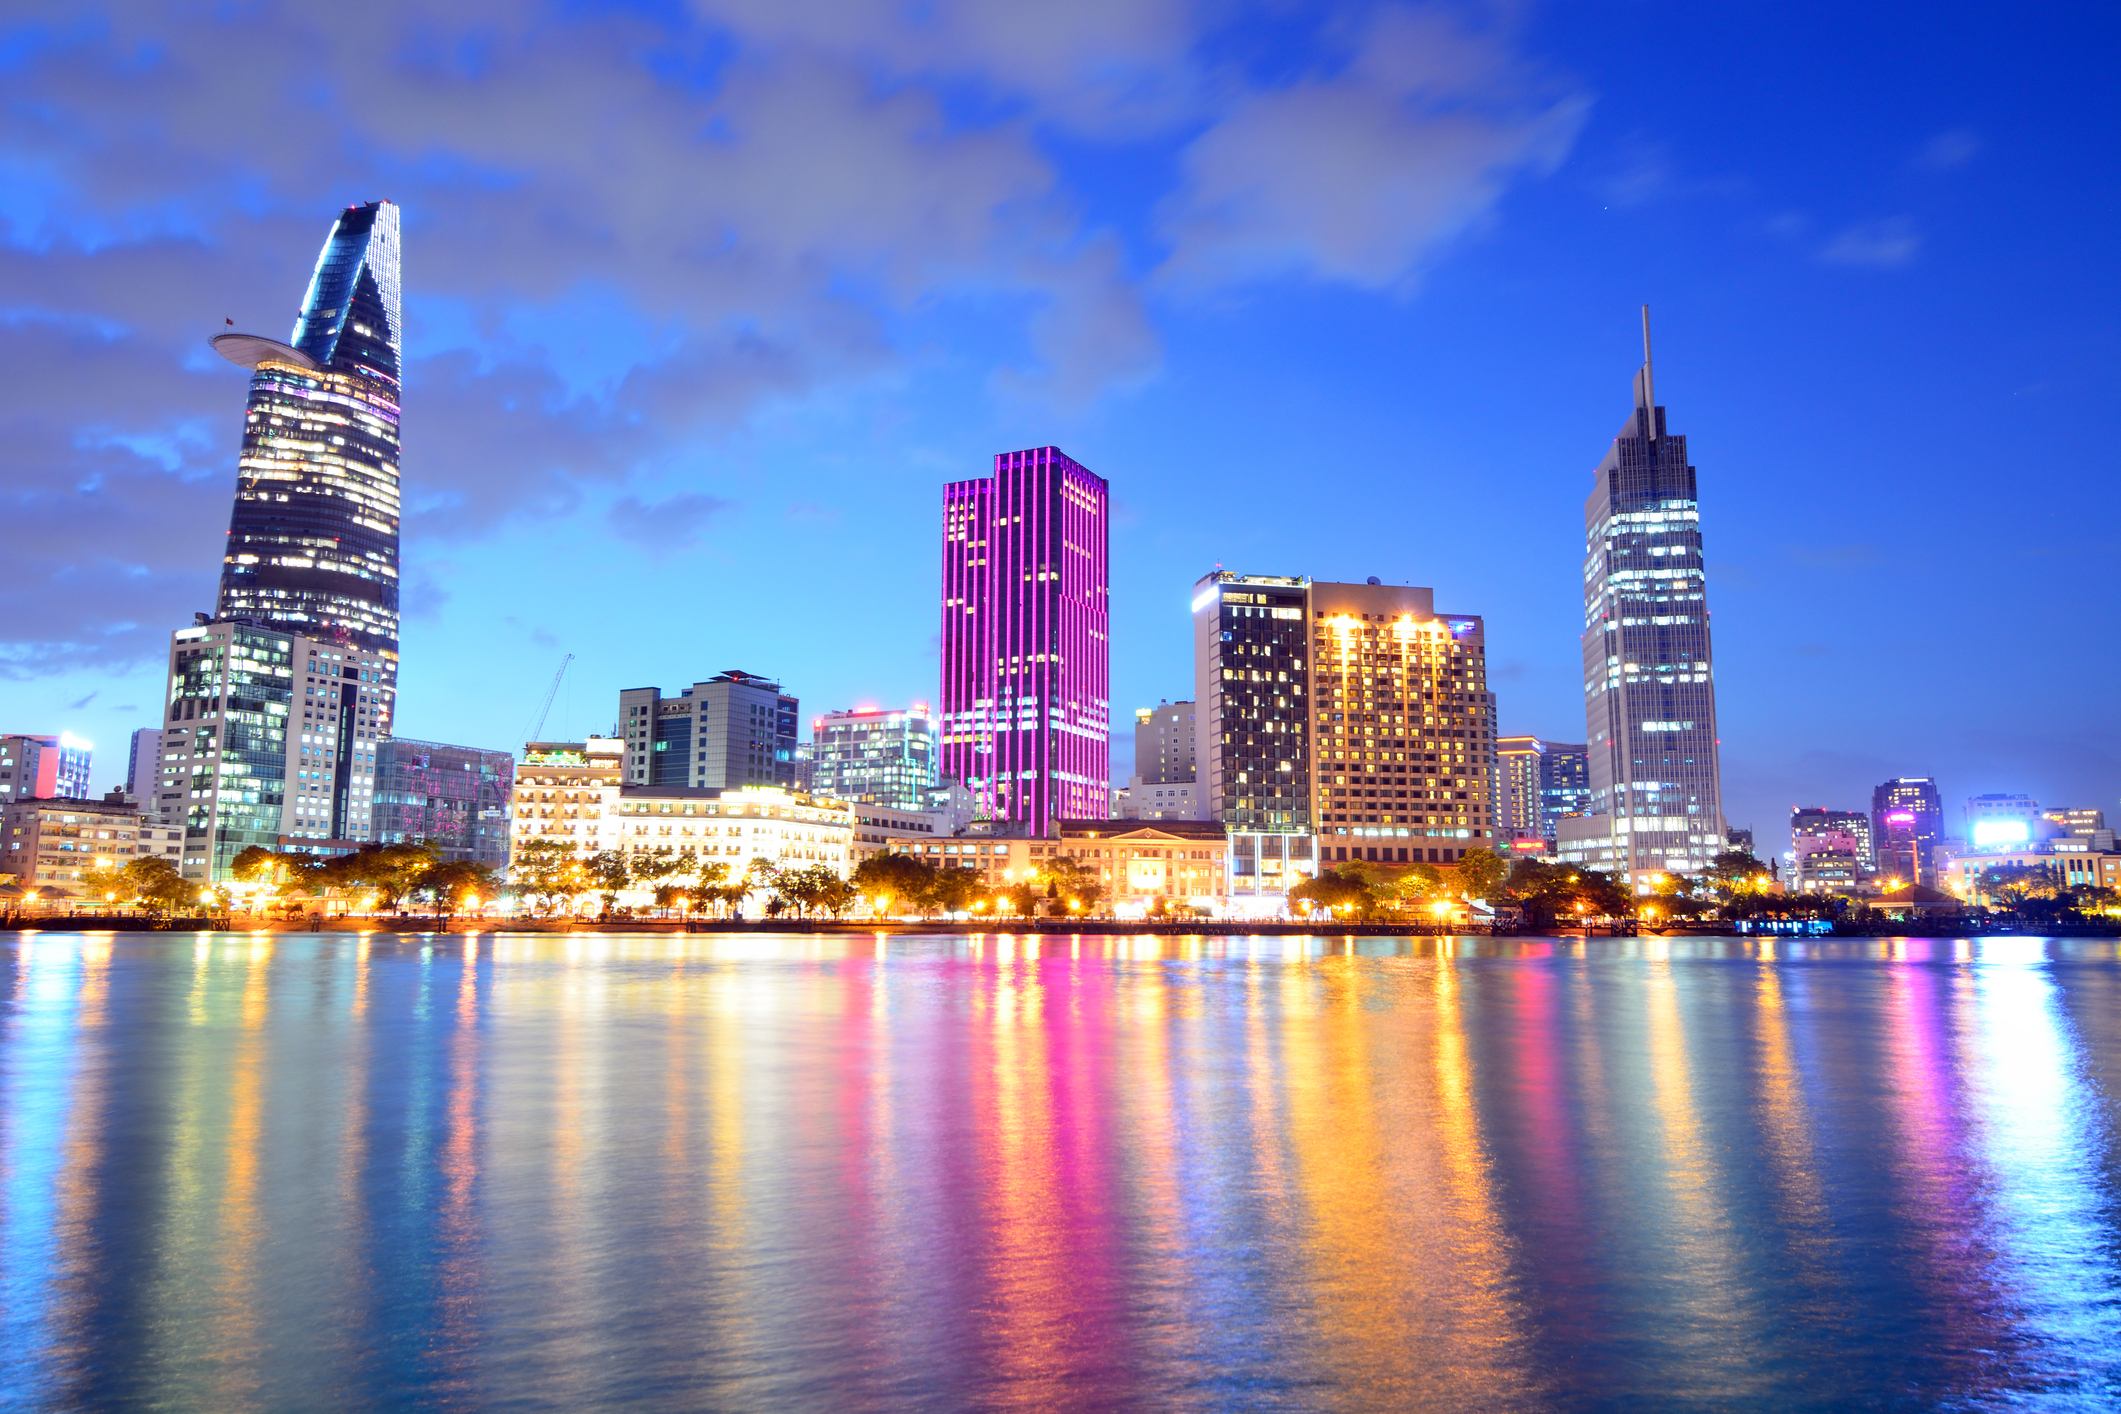 11 awesome reasons to take a trip to Ho Chi Minh City in Vietnam